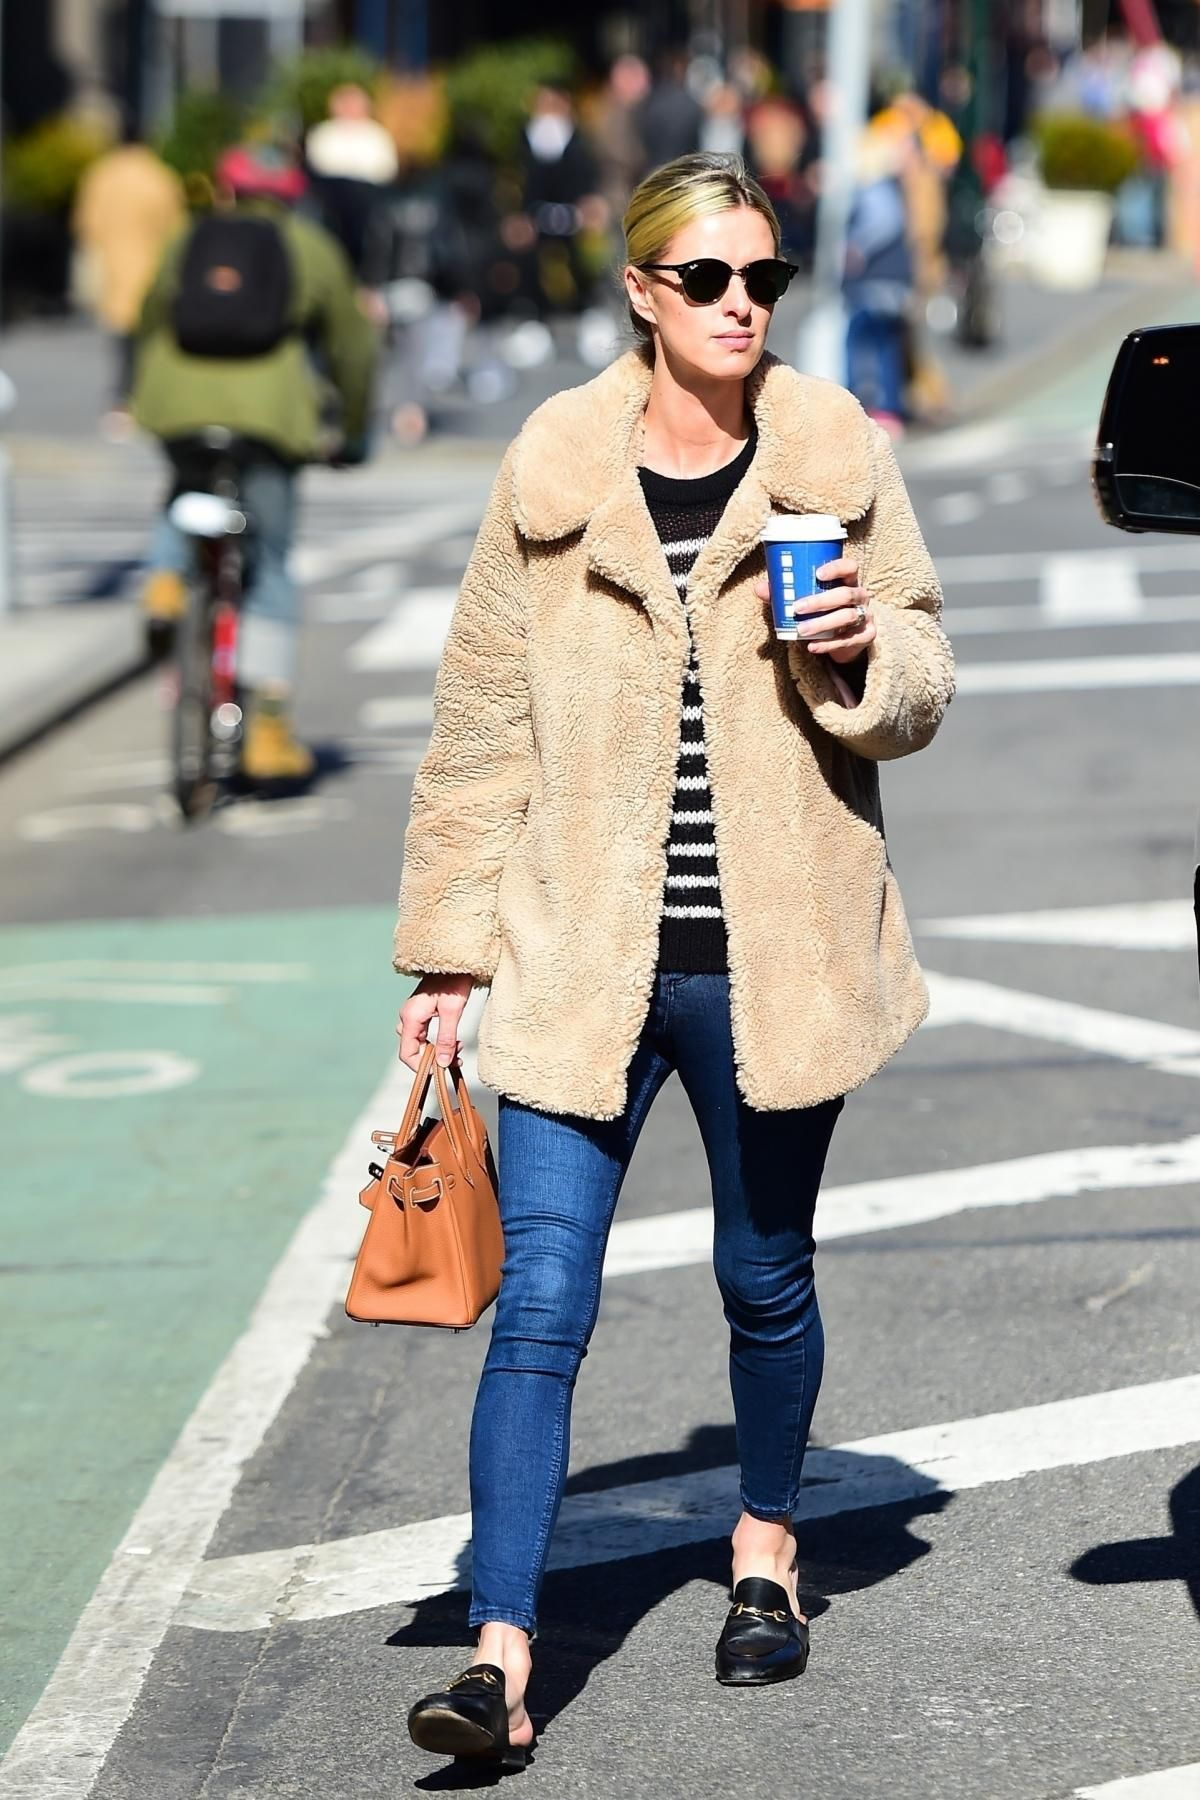 Nicky Hilton wearing Gucci Princetown Slippers ed5687ad72c2e